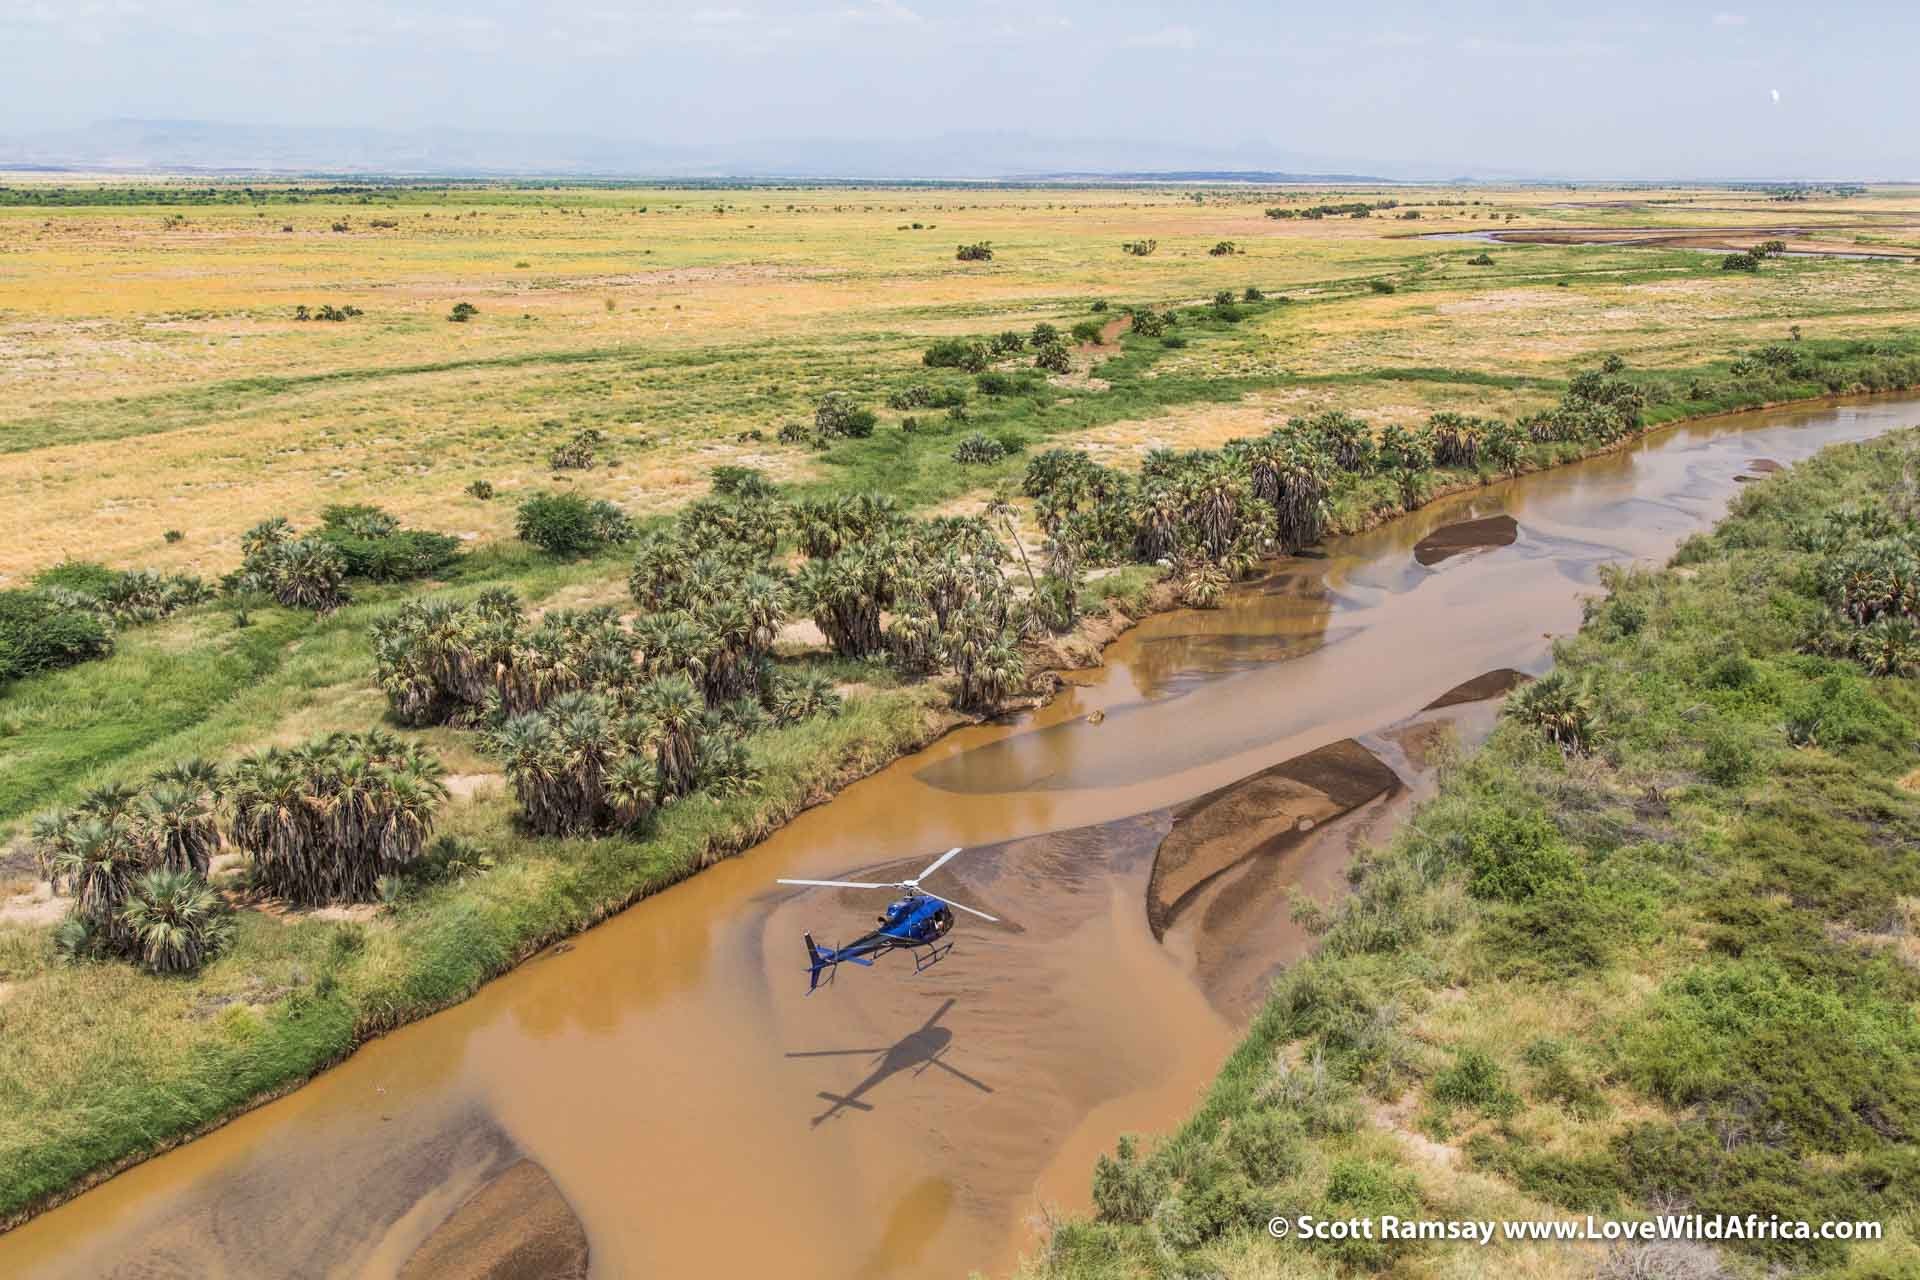 Flying along the course of the Suguta River, heading towards Lake Bogoria and Lake Naivasha.